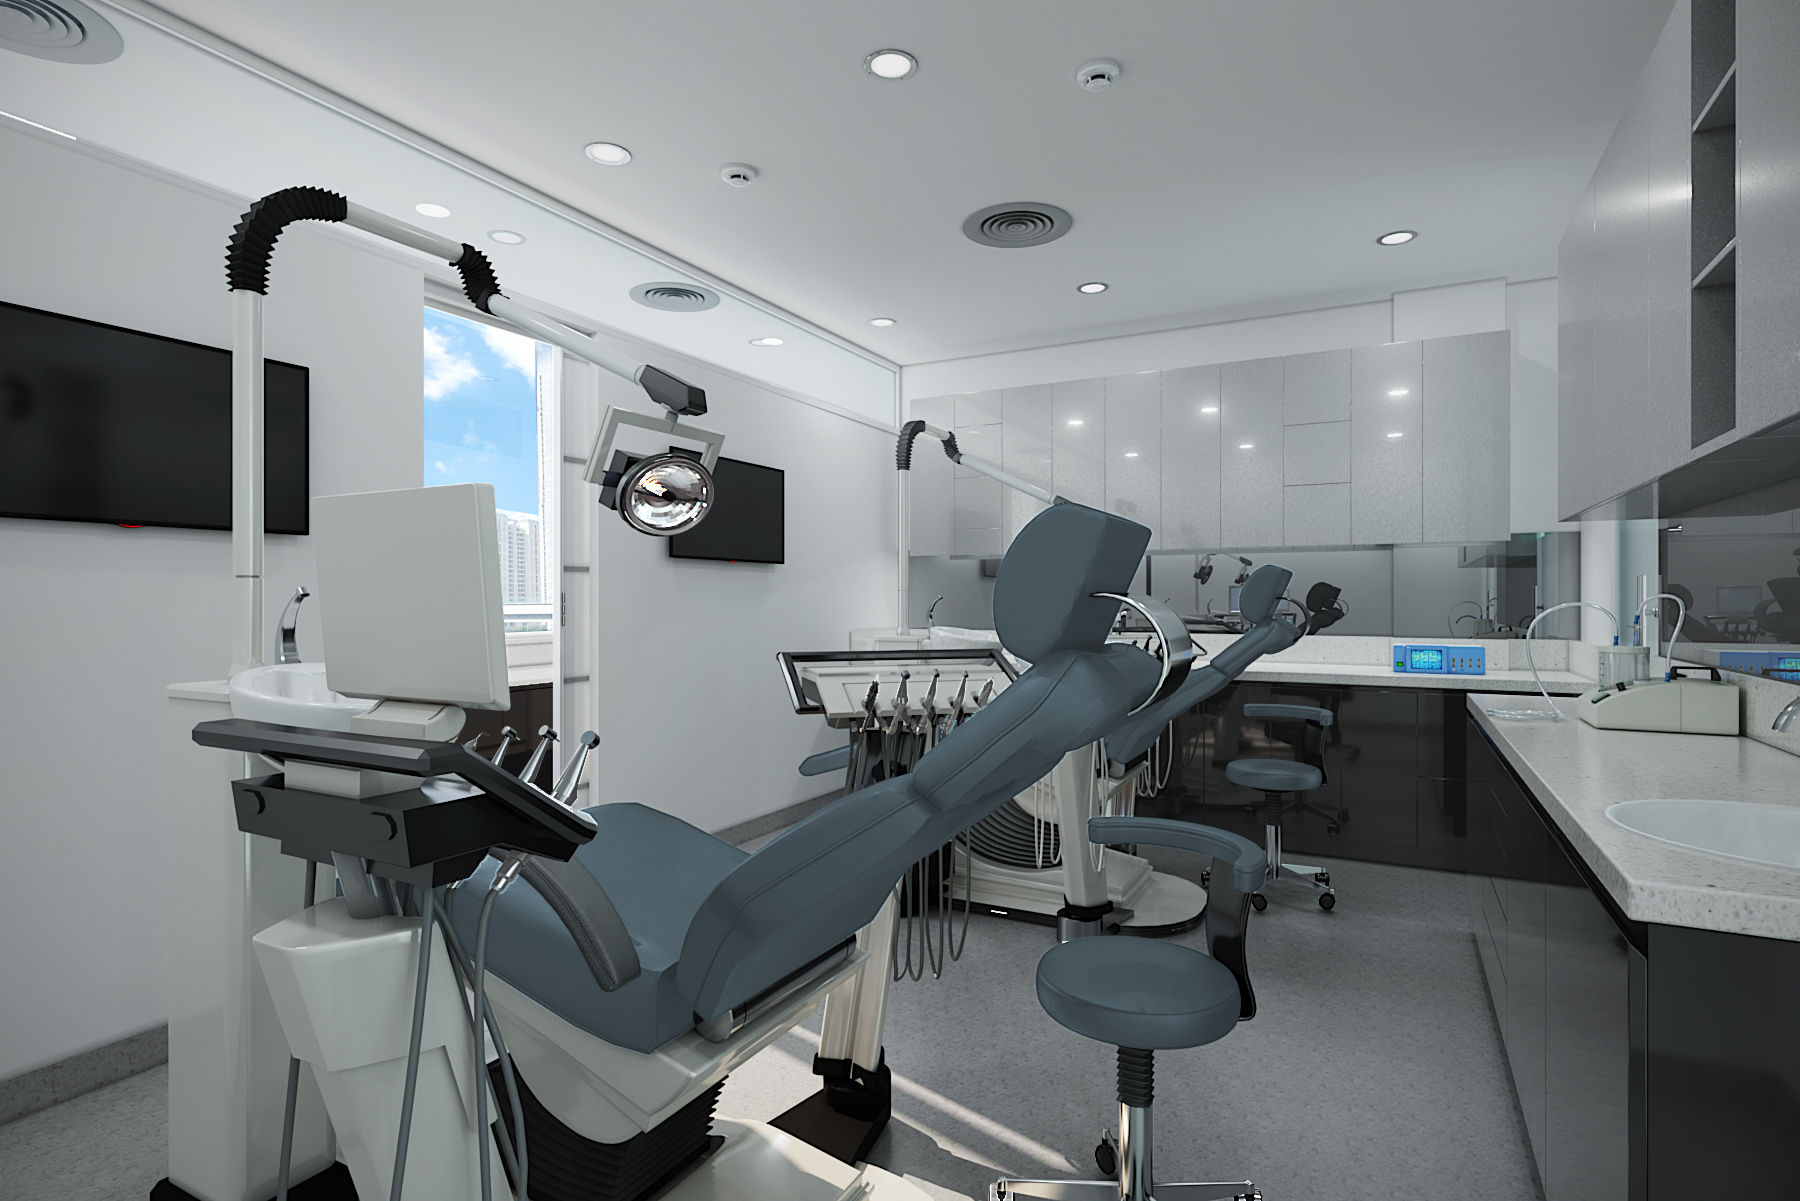 Dental Clinic: Why It Is Important To Seek A Dentist's Help